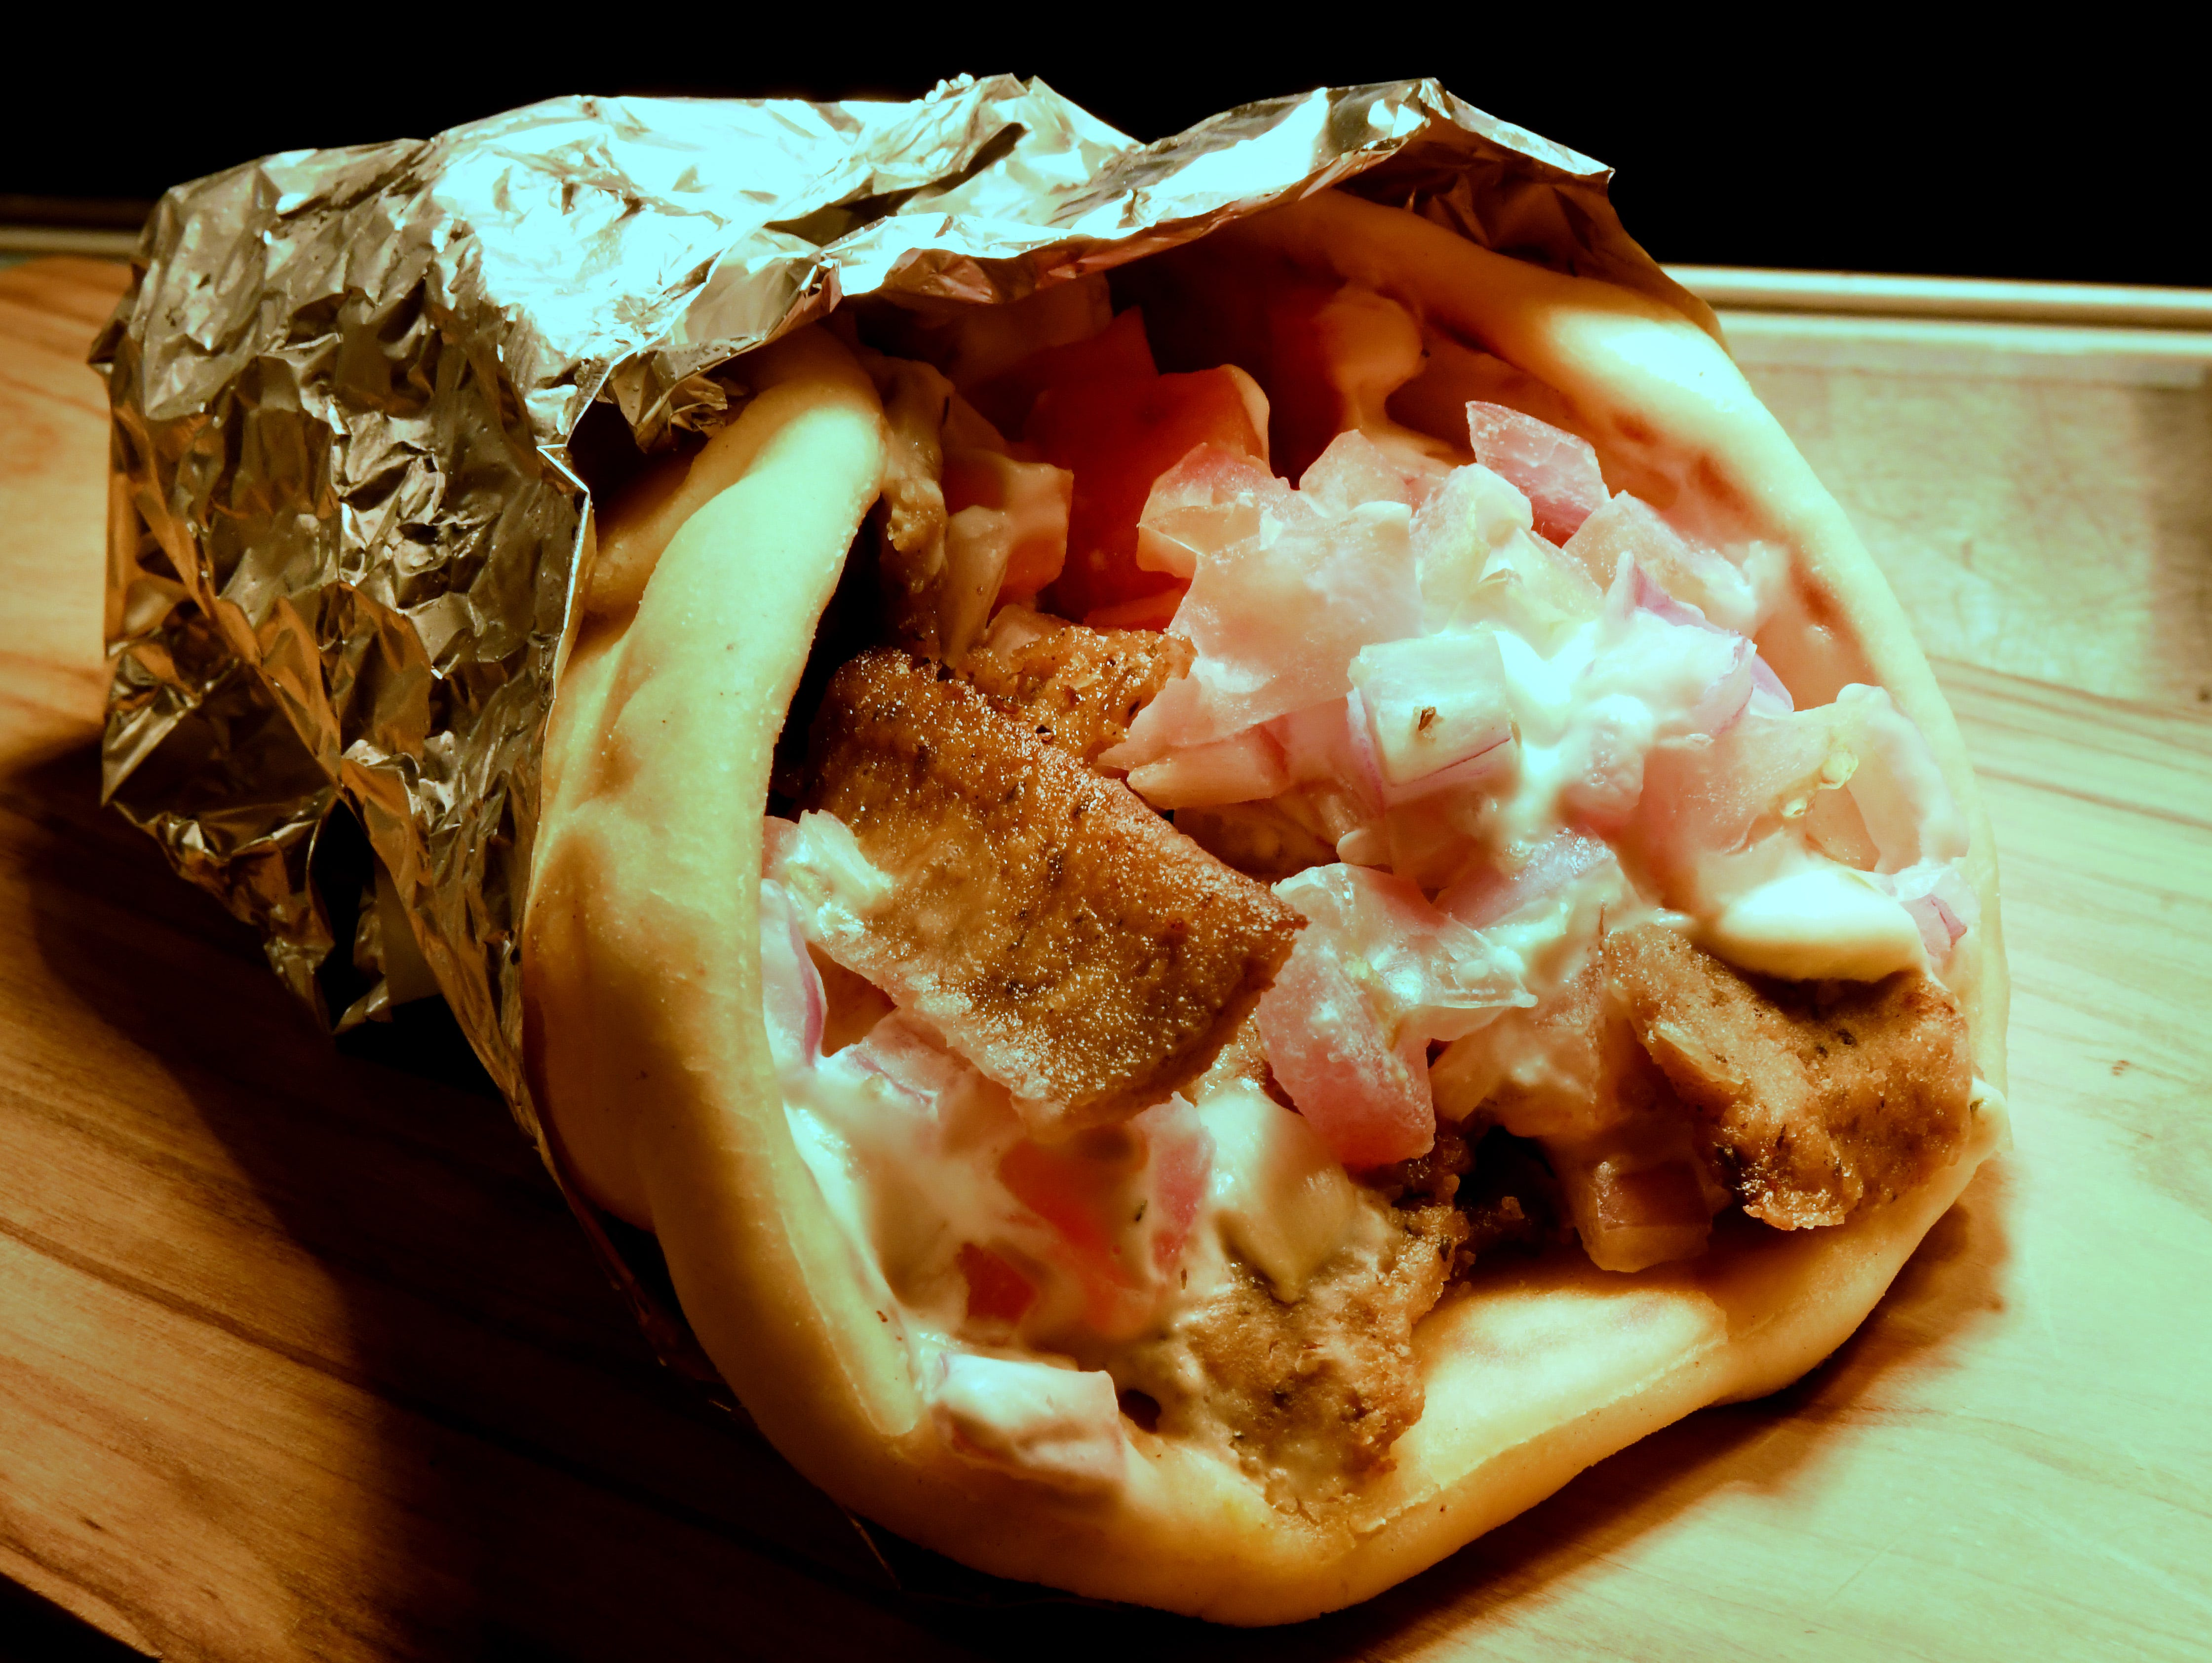 """""""Hand Carved Gyro"""" consisting a a soft pita filled with sizzling cared gyro meat, diced tomatoes, tzatziki saucer and red onion."""